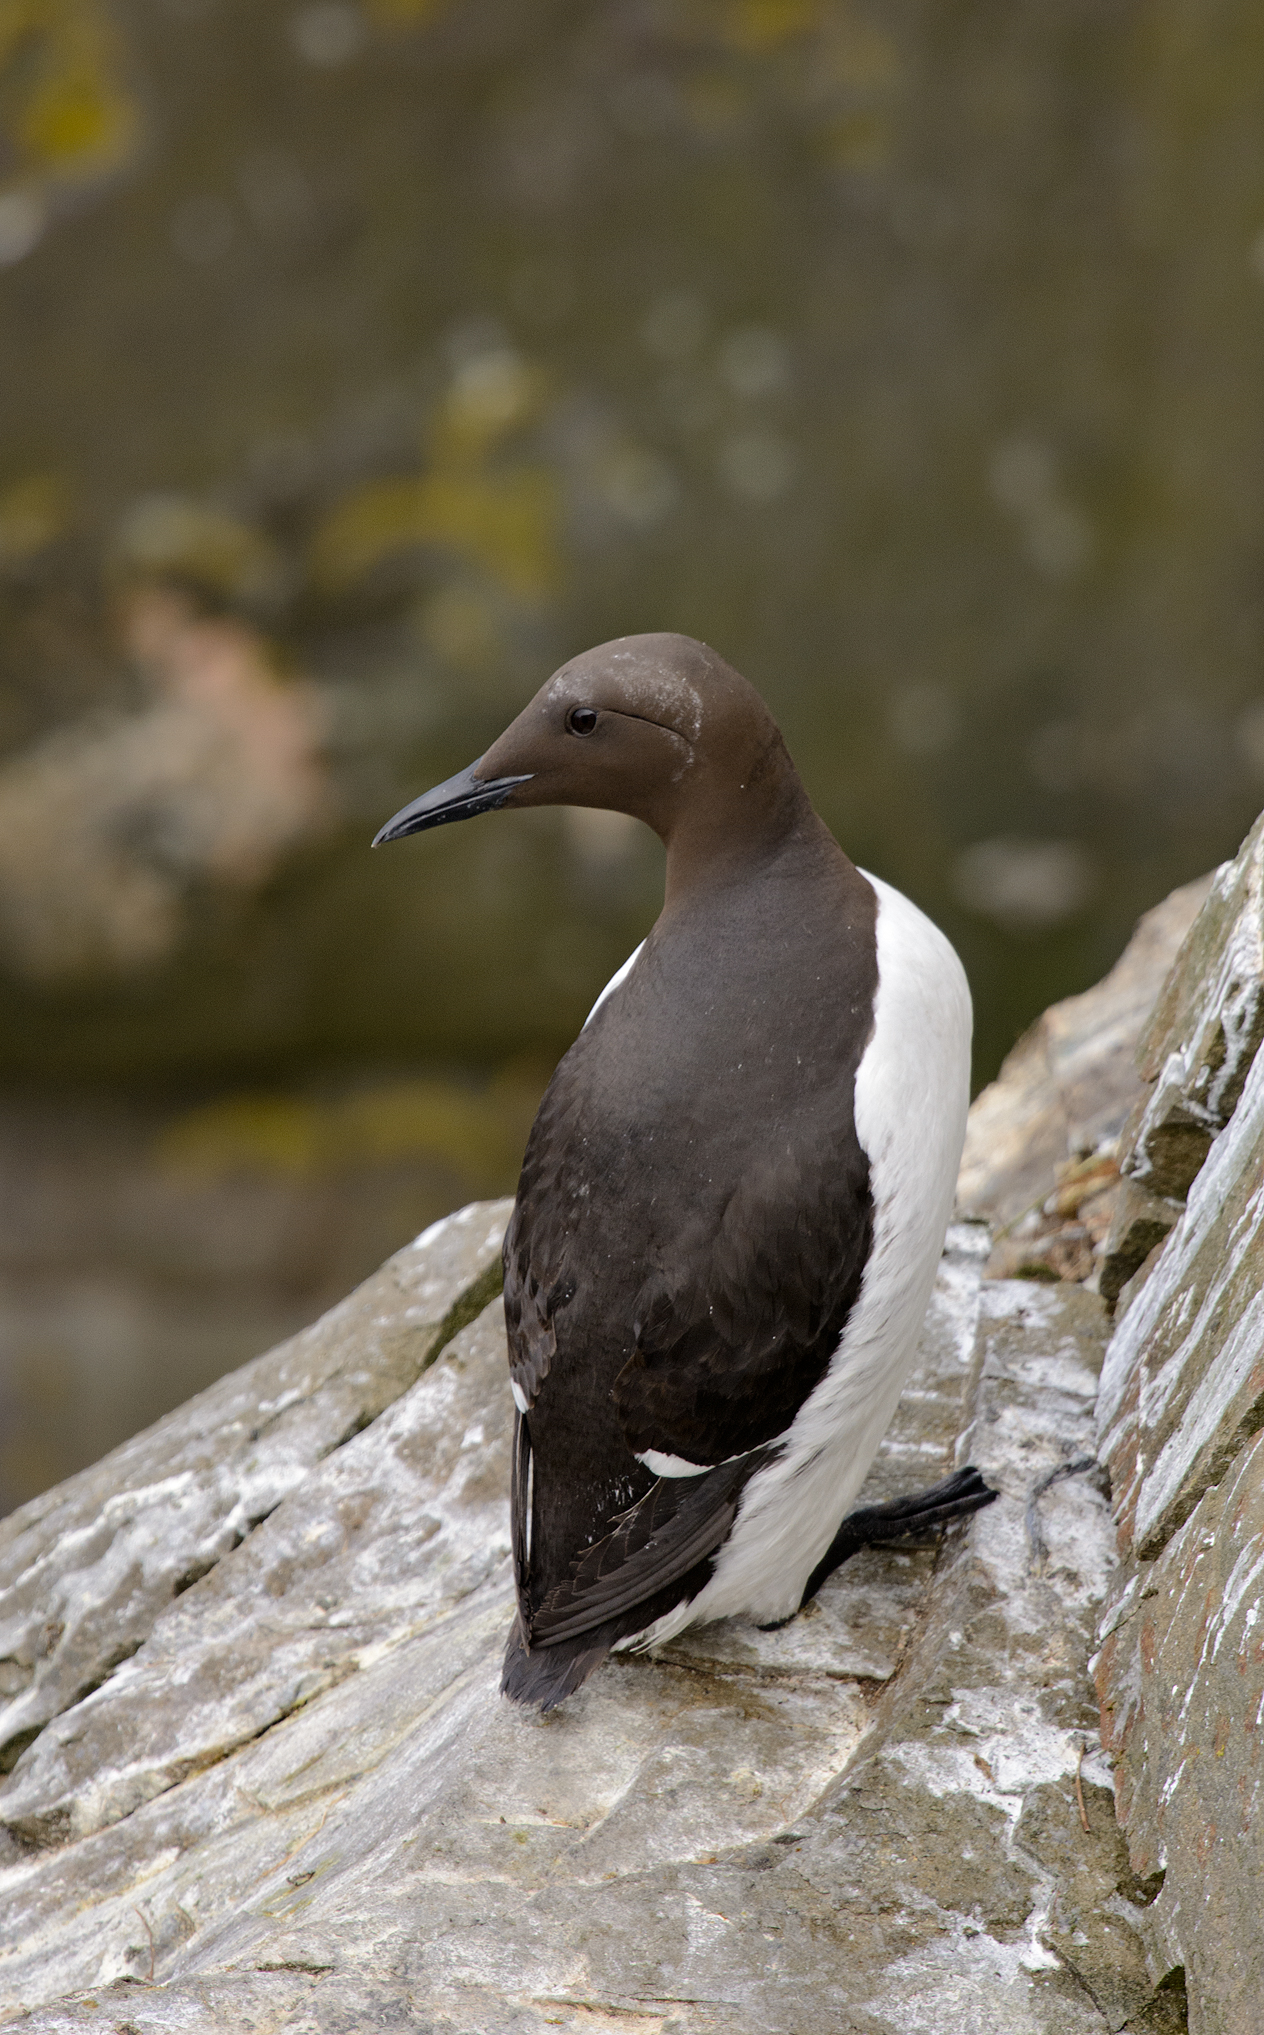 This is a Common Murre looking for its mate